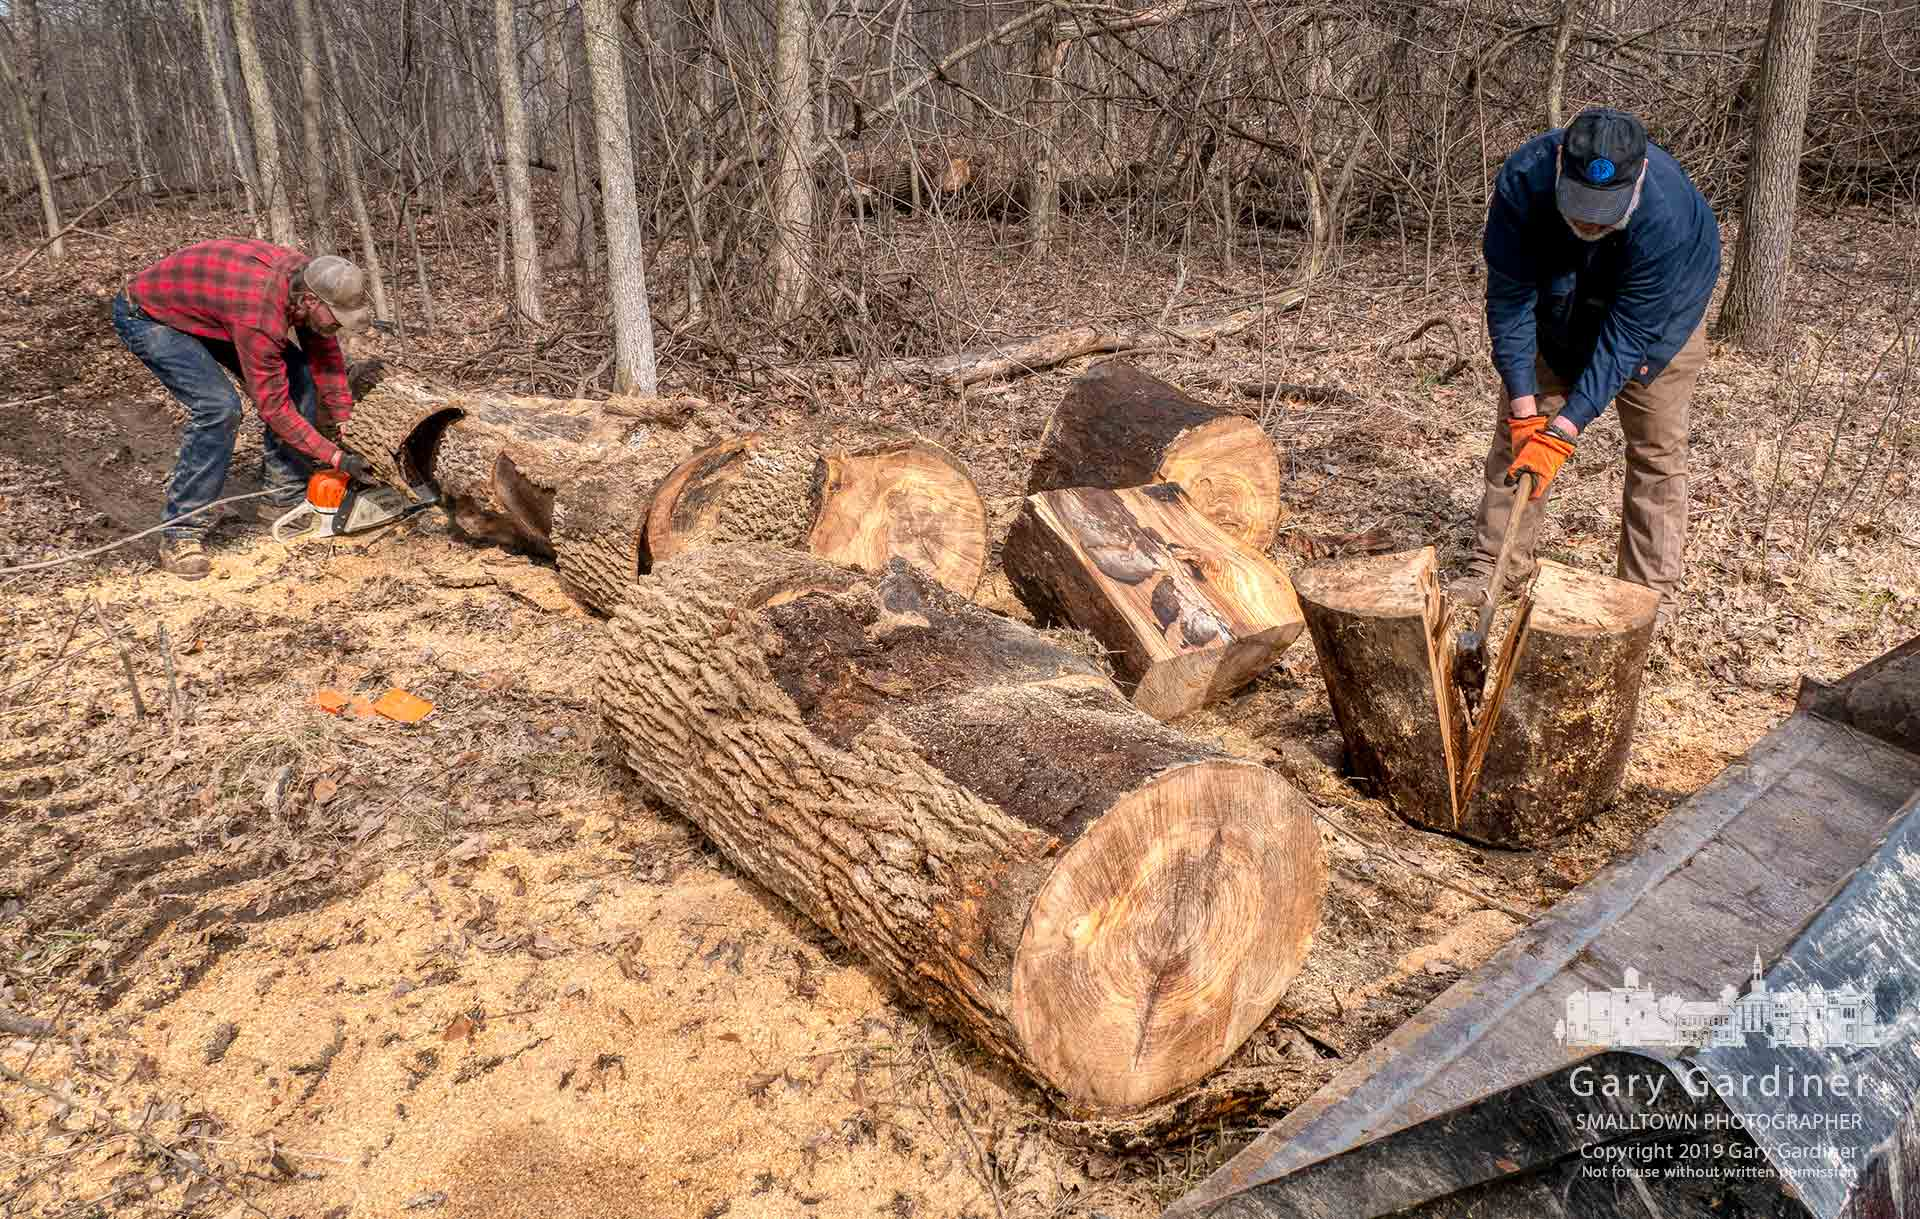 Farmer Kevin Scott, right, splits sections of ash tree into firewood after it was collected from fields along Africa Road where it was cut last year to help stop the spread of the ash borer beetle. My Final Photo for March 1, 2019.